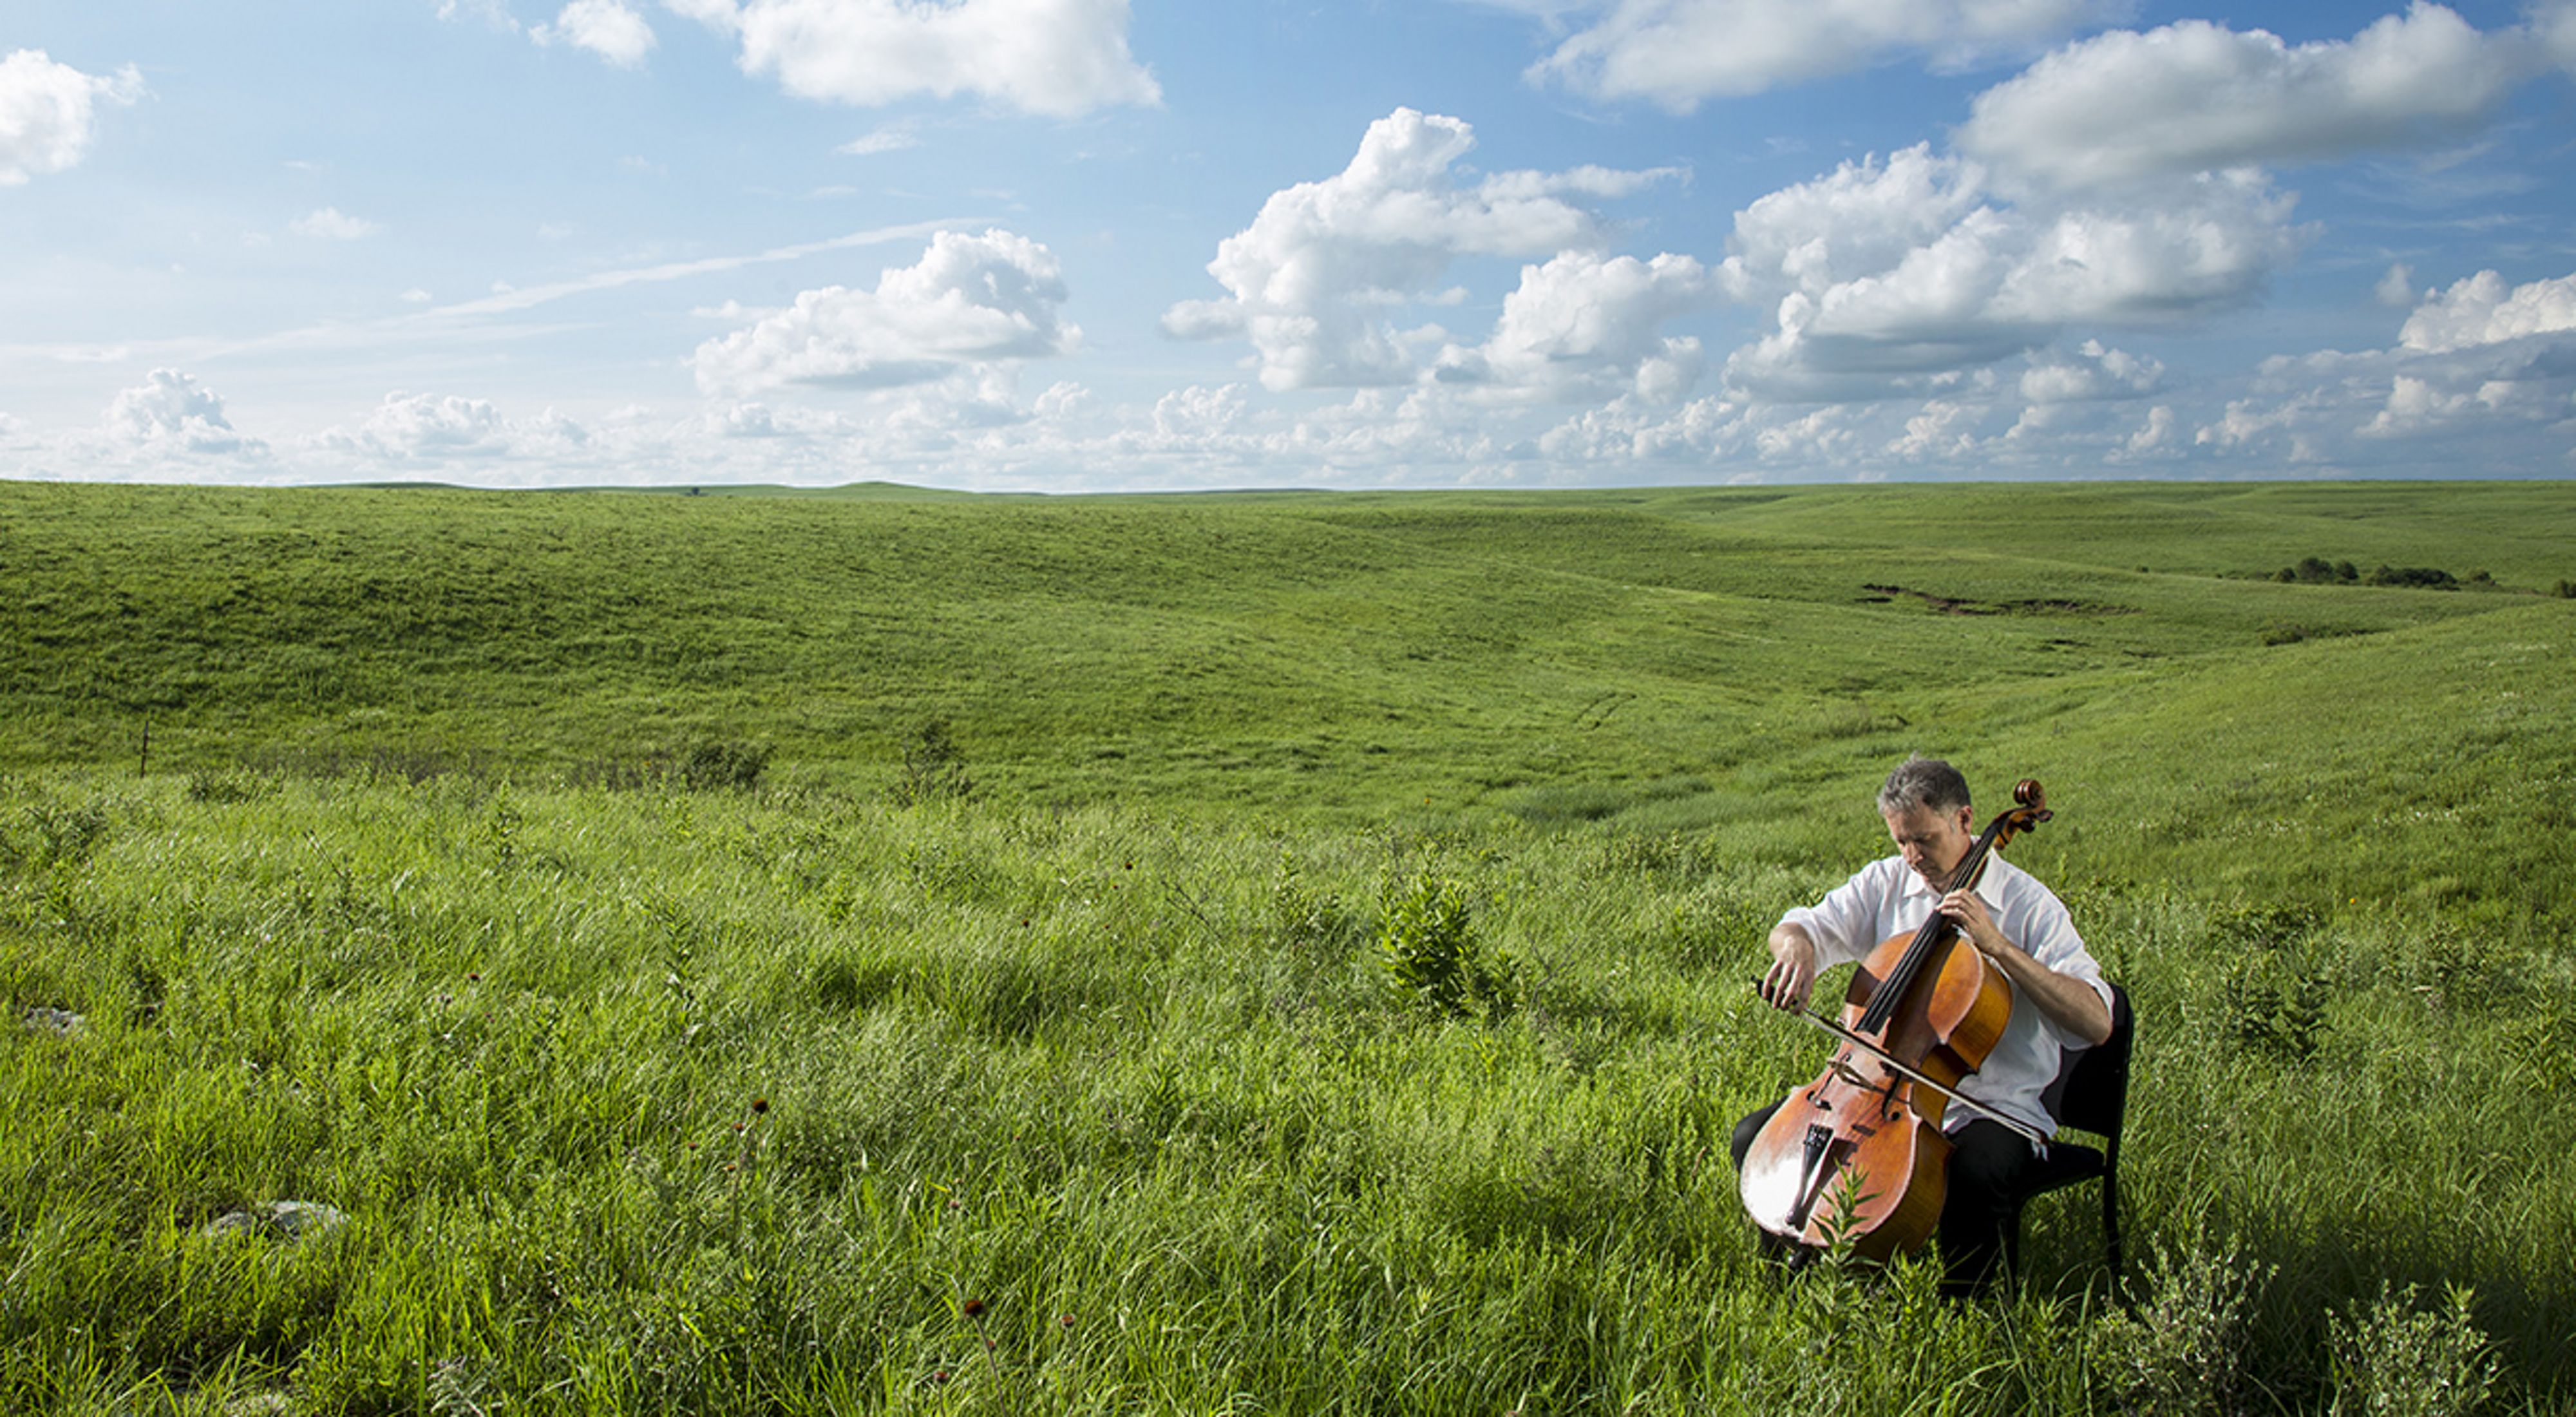 A cellist plays in a grassy field under a blue sky